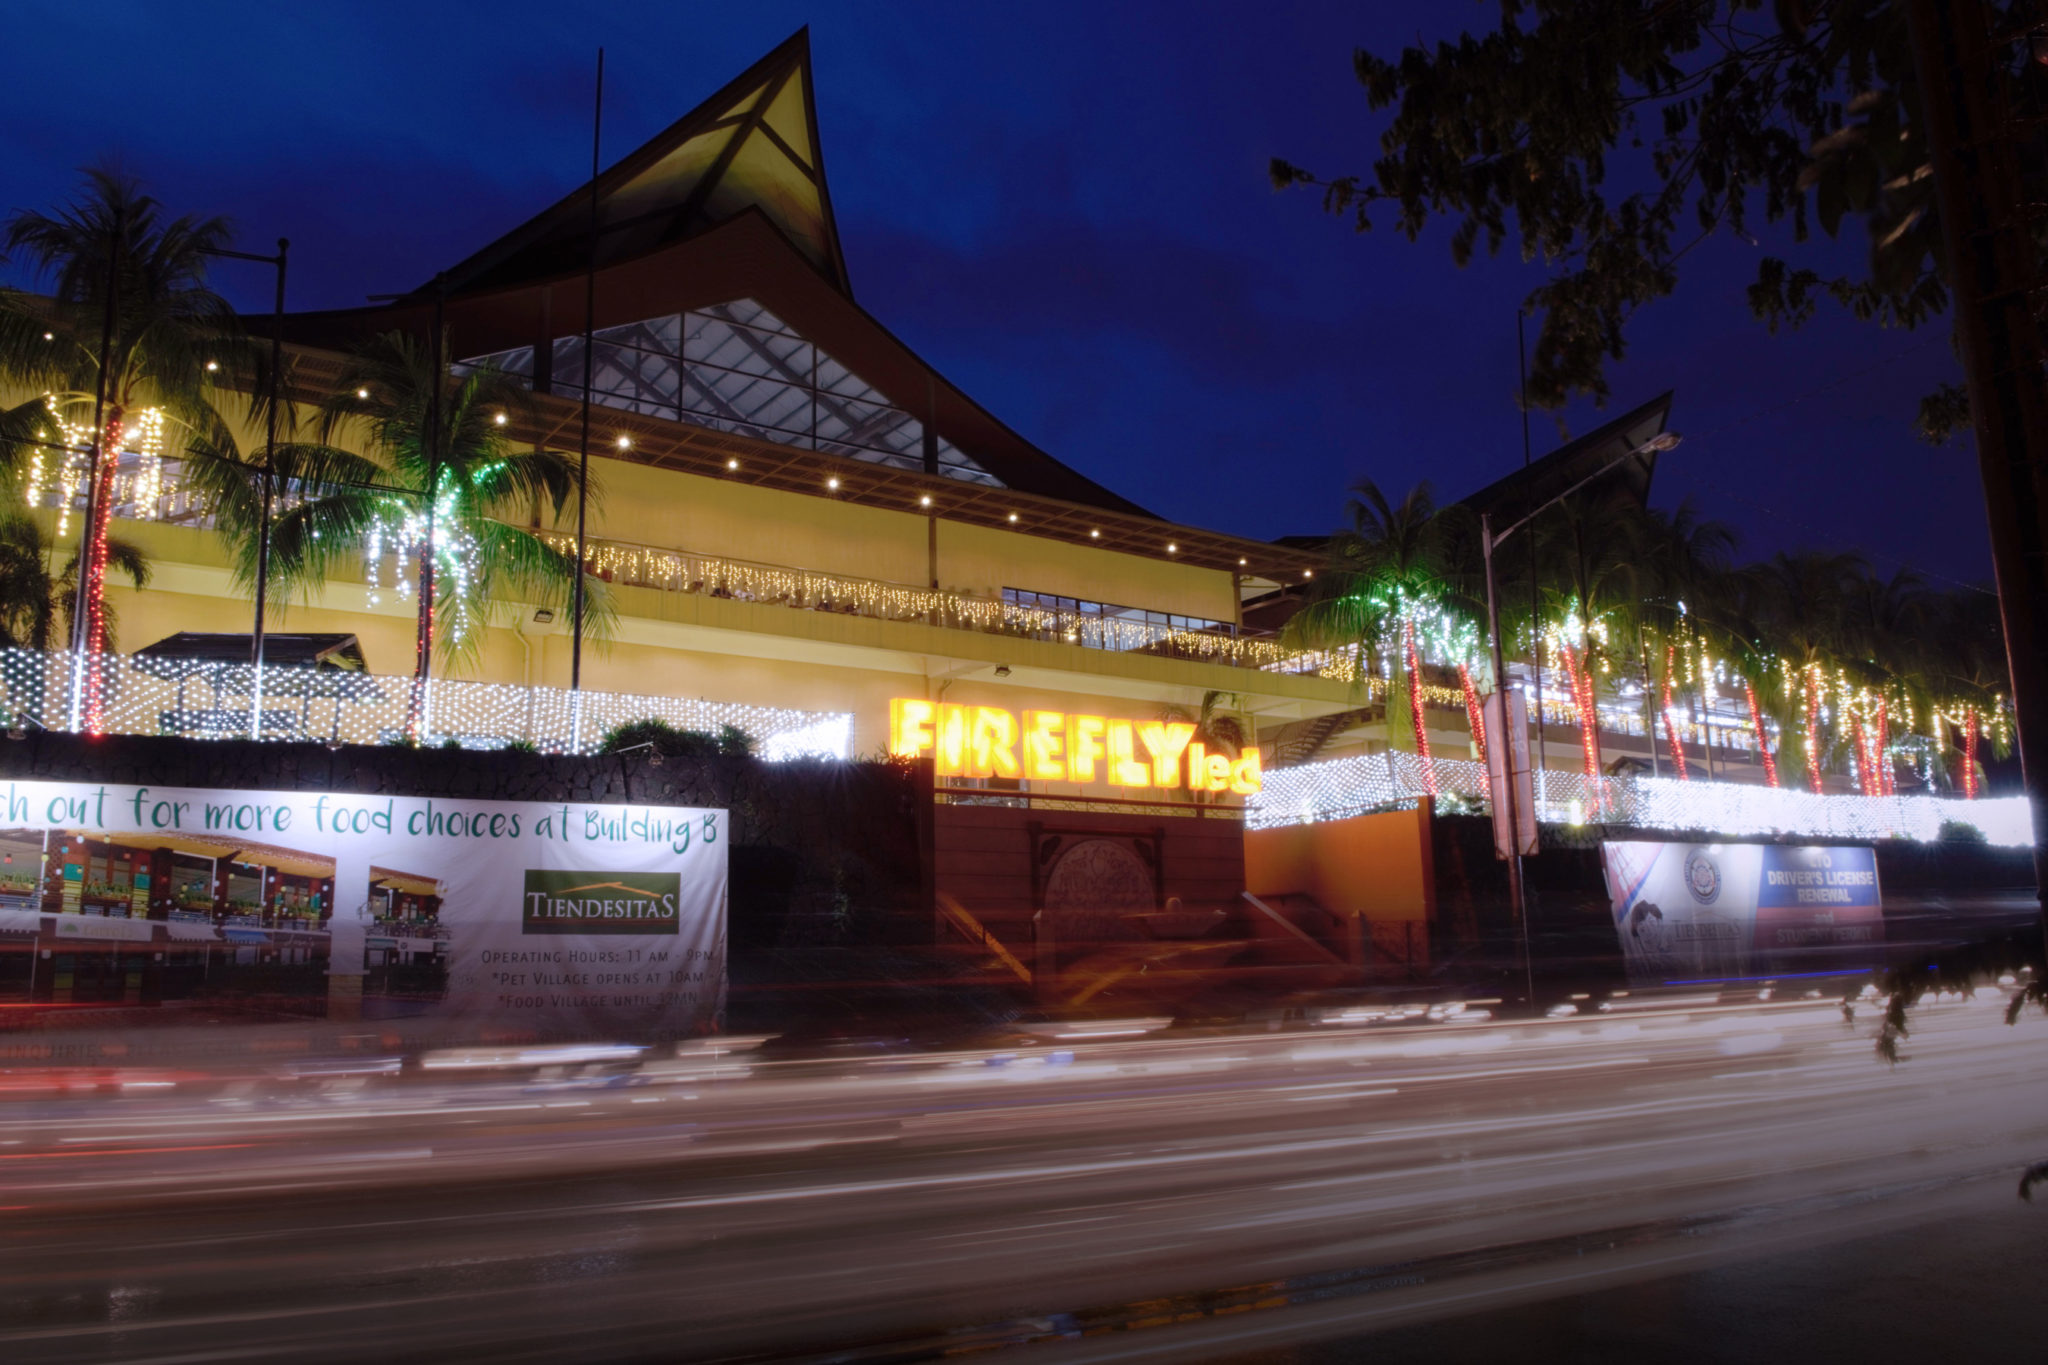 FIREFLY LED, The Trusted Brand In Energy Efficient LED Lighting, Has  Started To Usher In A Brighter, Merrier, And Energy Efficient Yuletide  Season Through ...